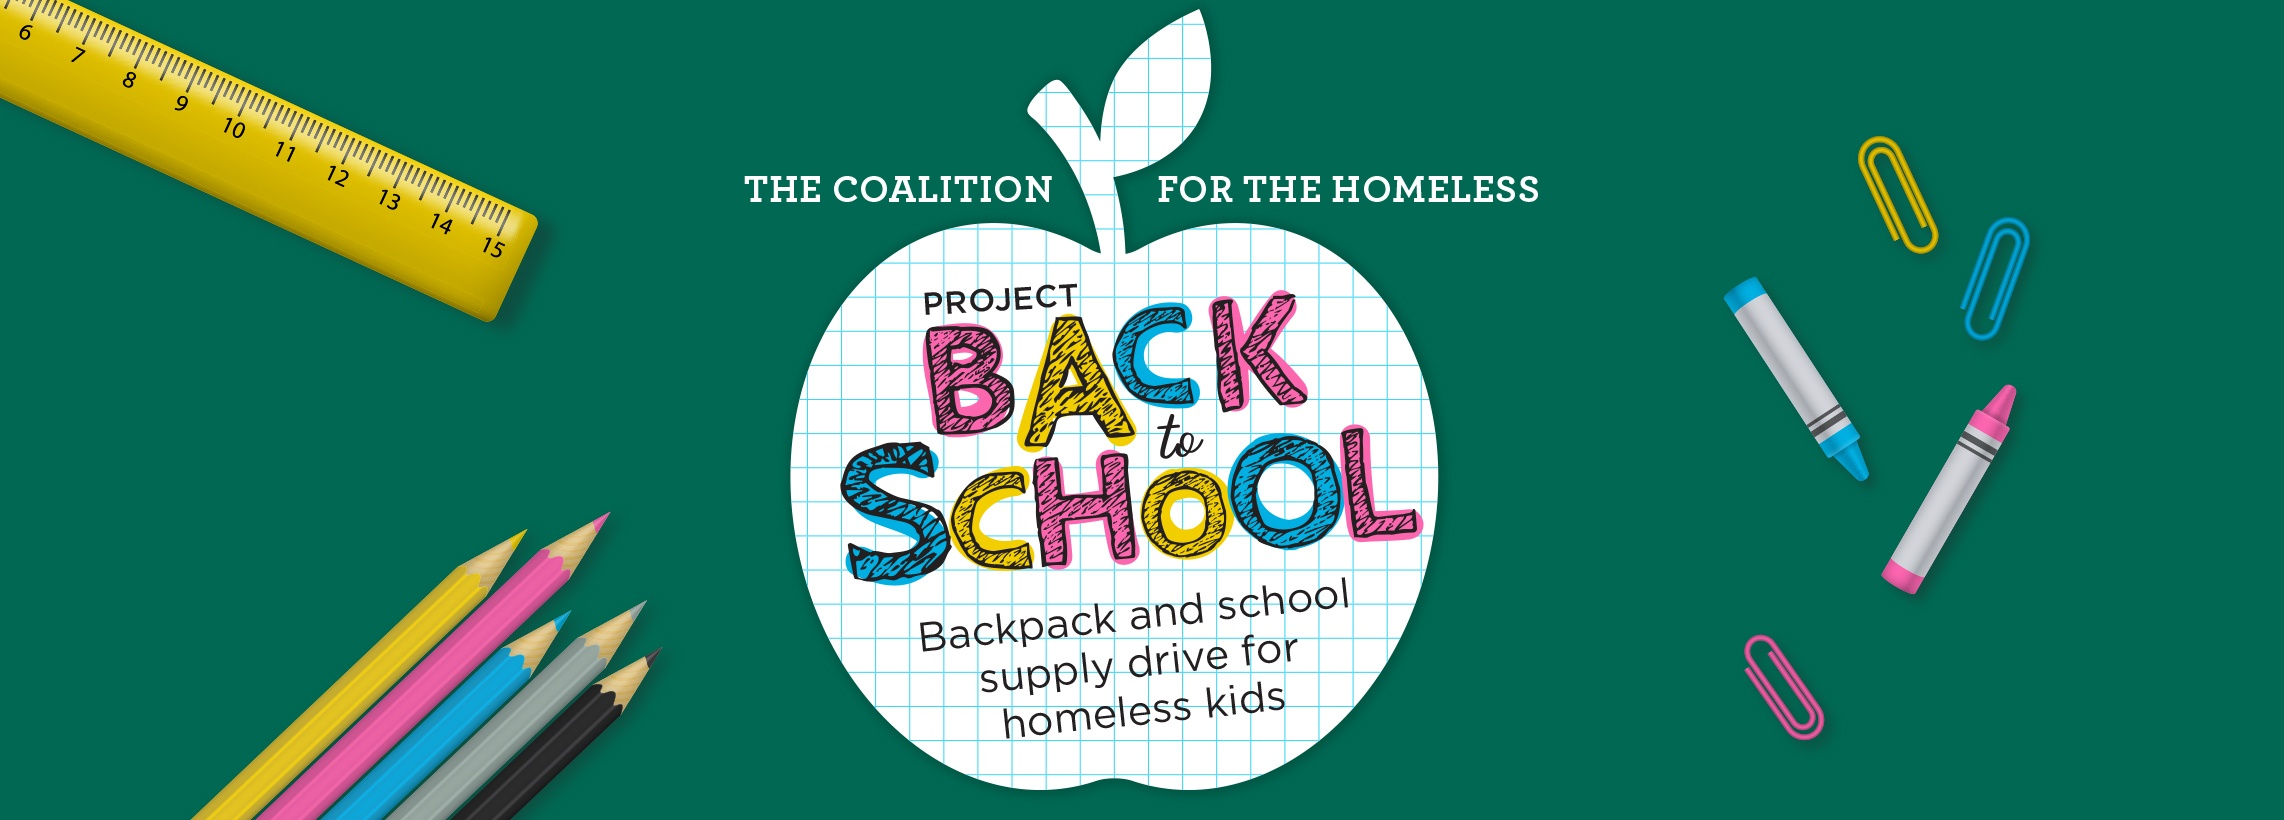 2019 Project: Back to School Drop-Off Locations